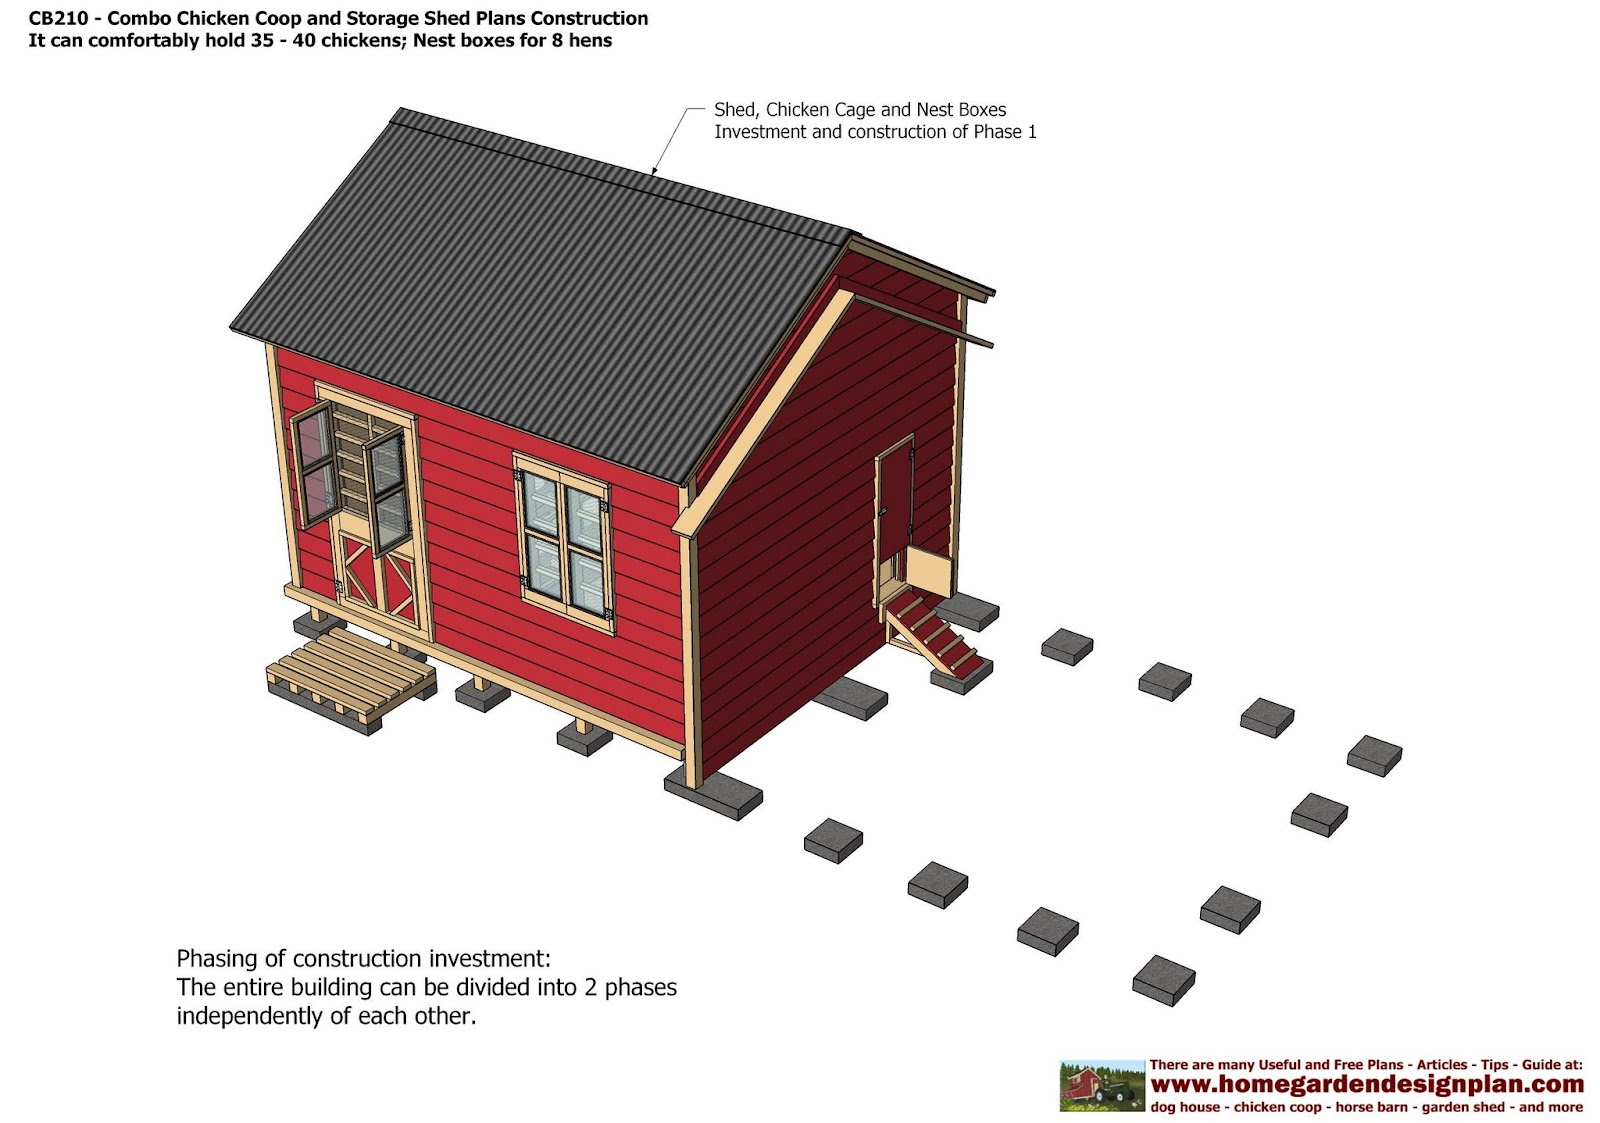 - Combo Plans - Chicken Coop Plans Construction + Garden Sheds Plans